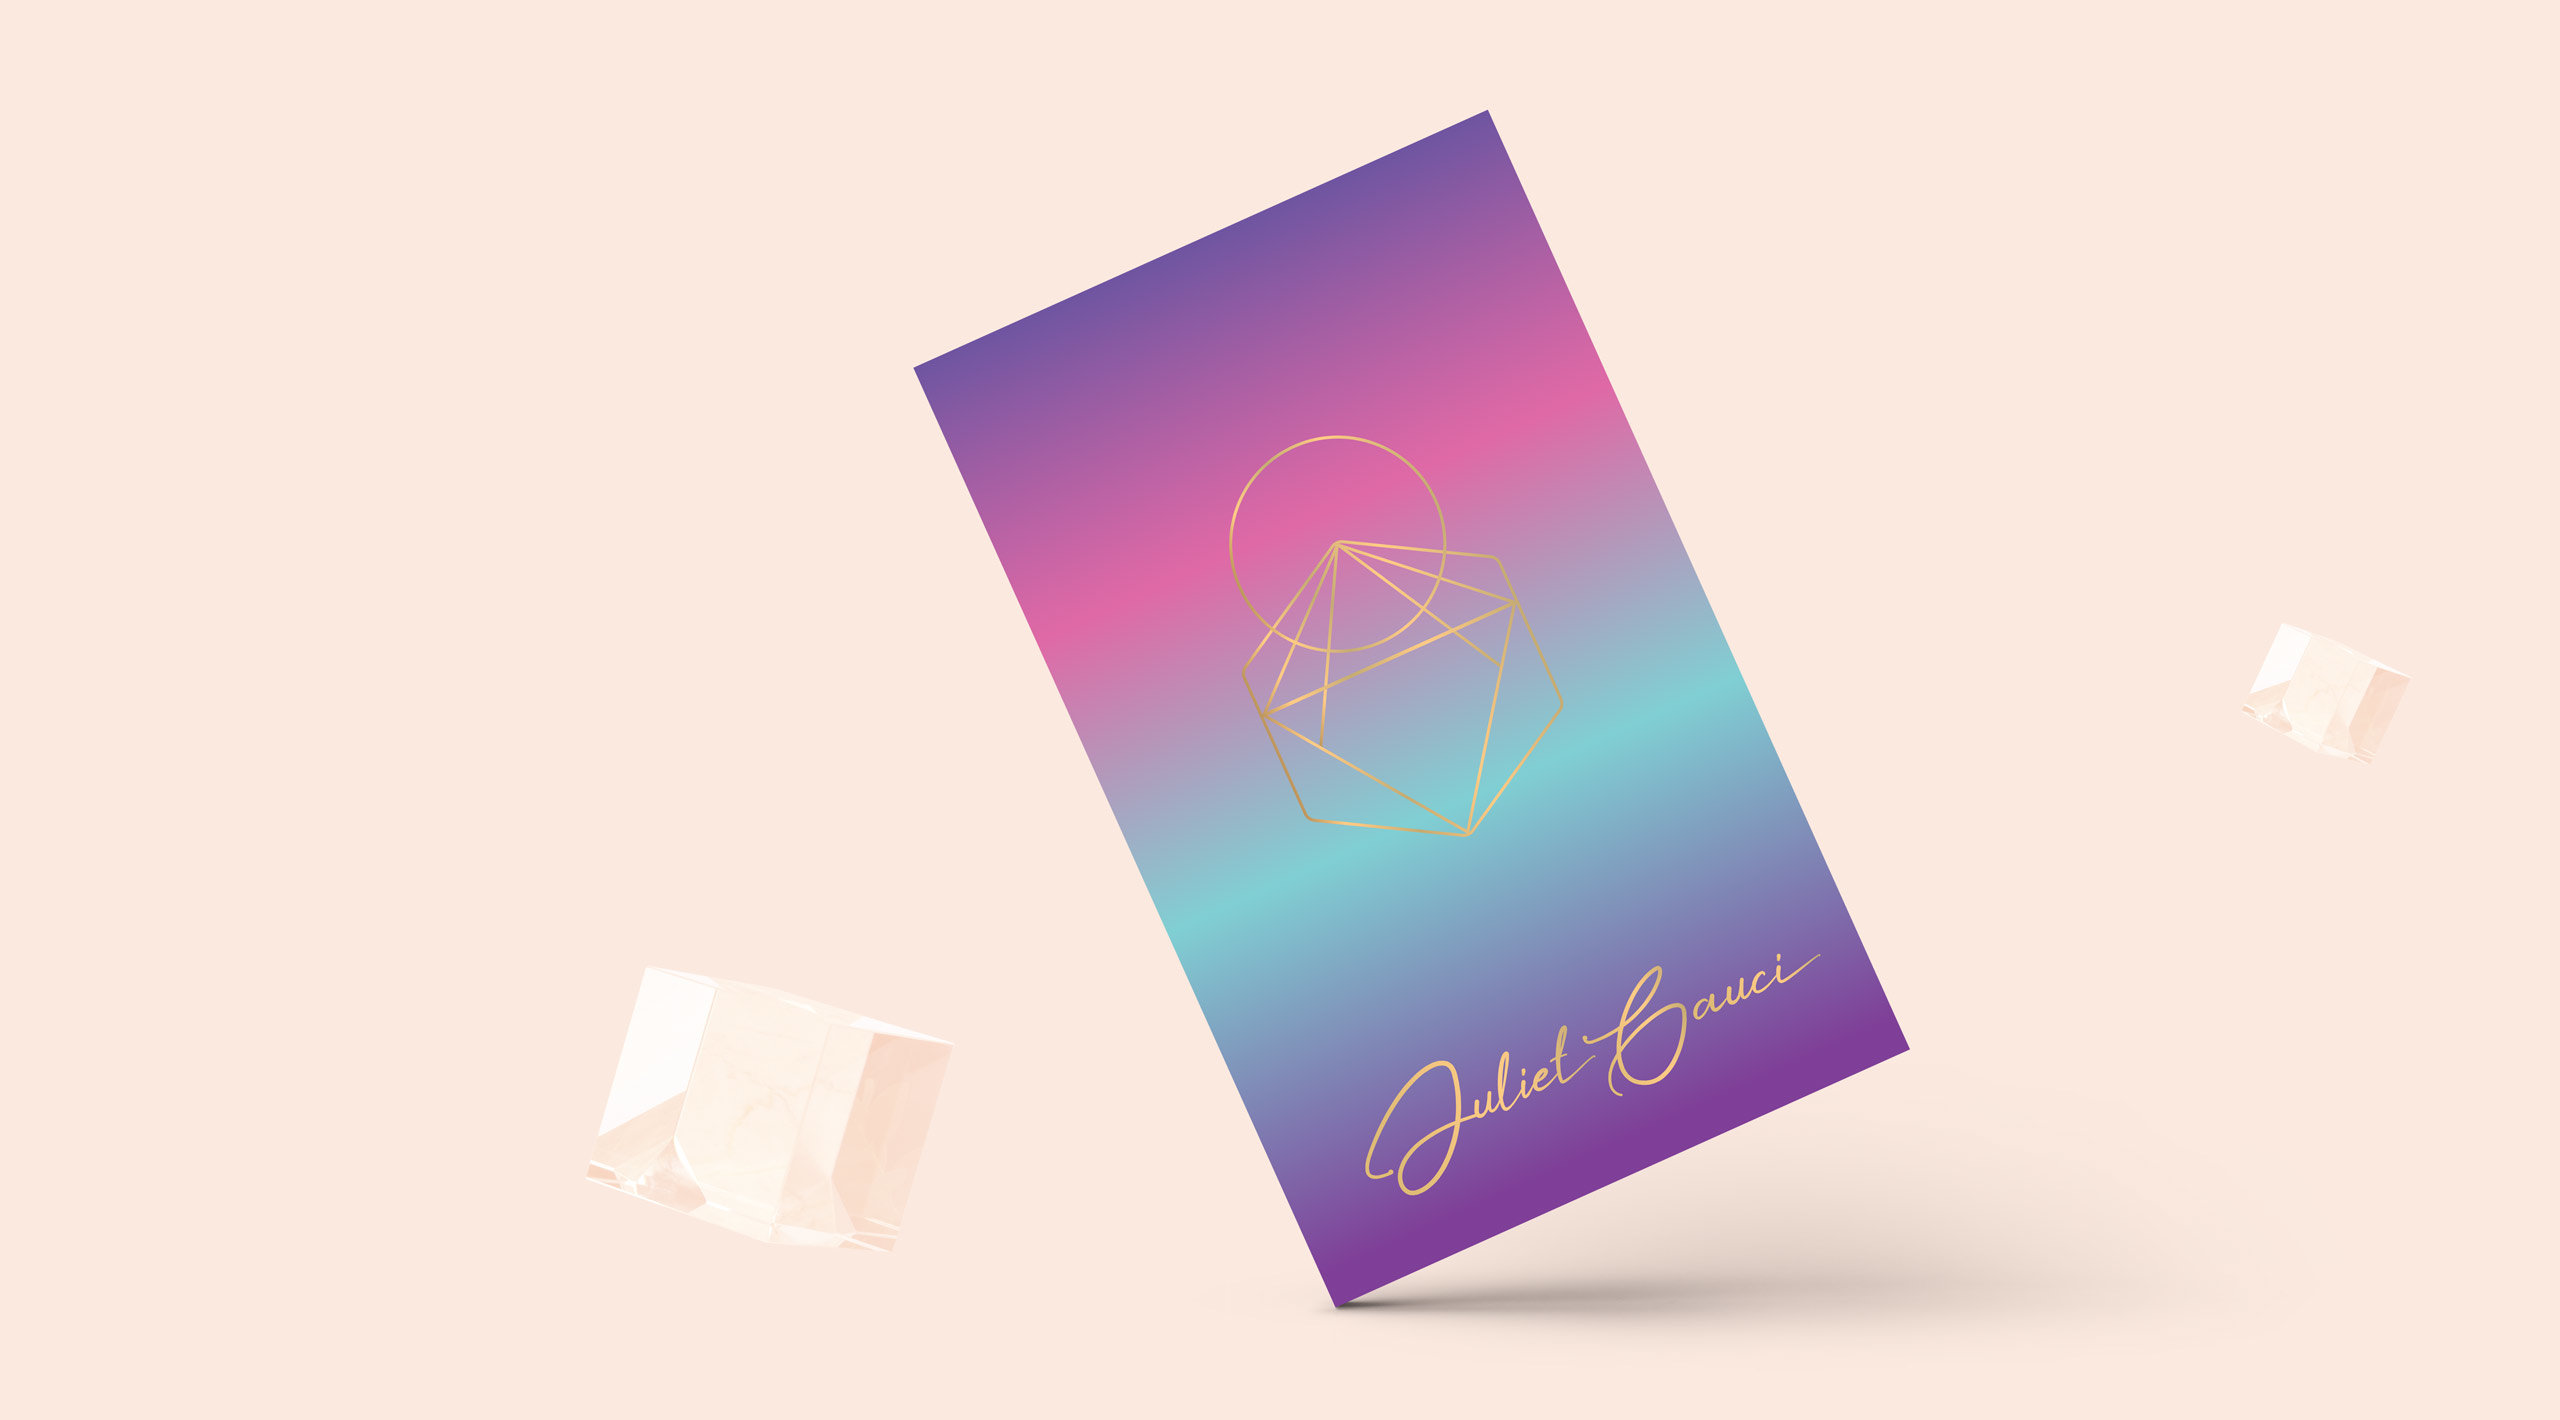 juliet gauci gradient business card